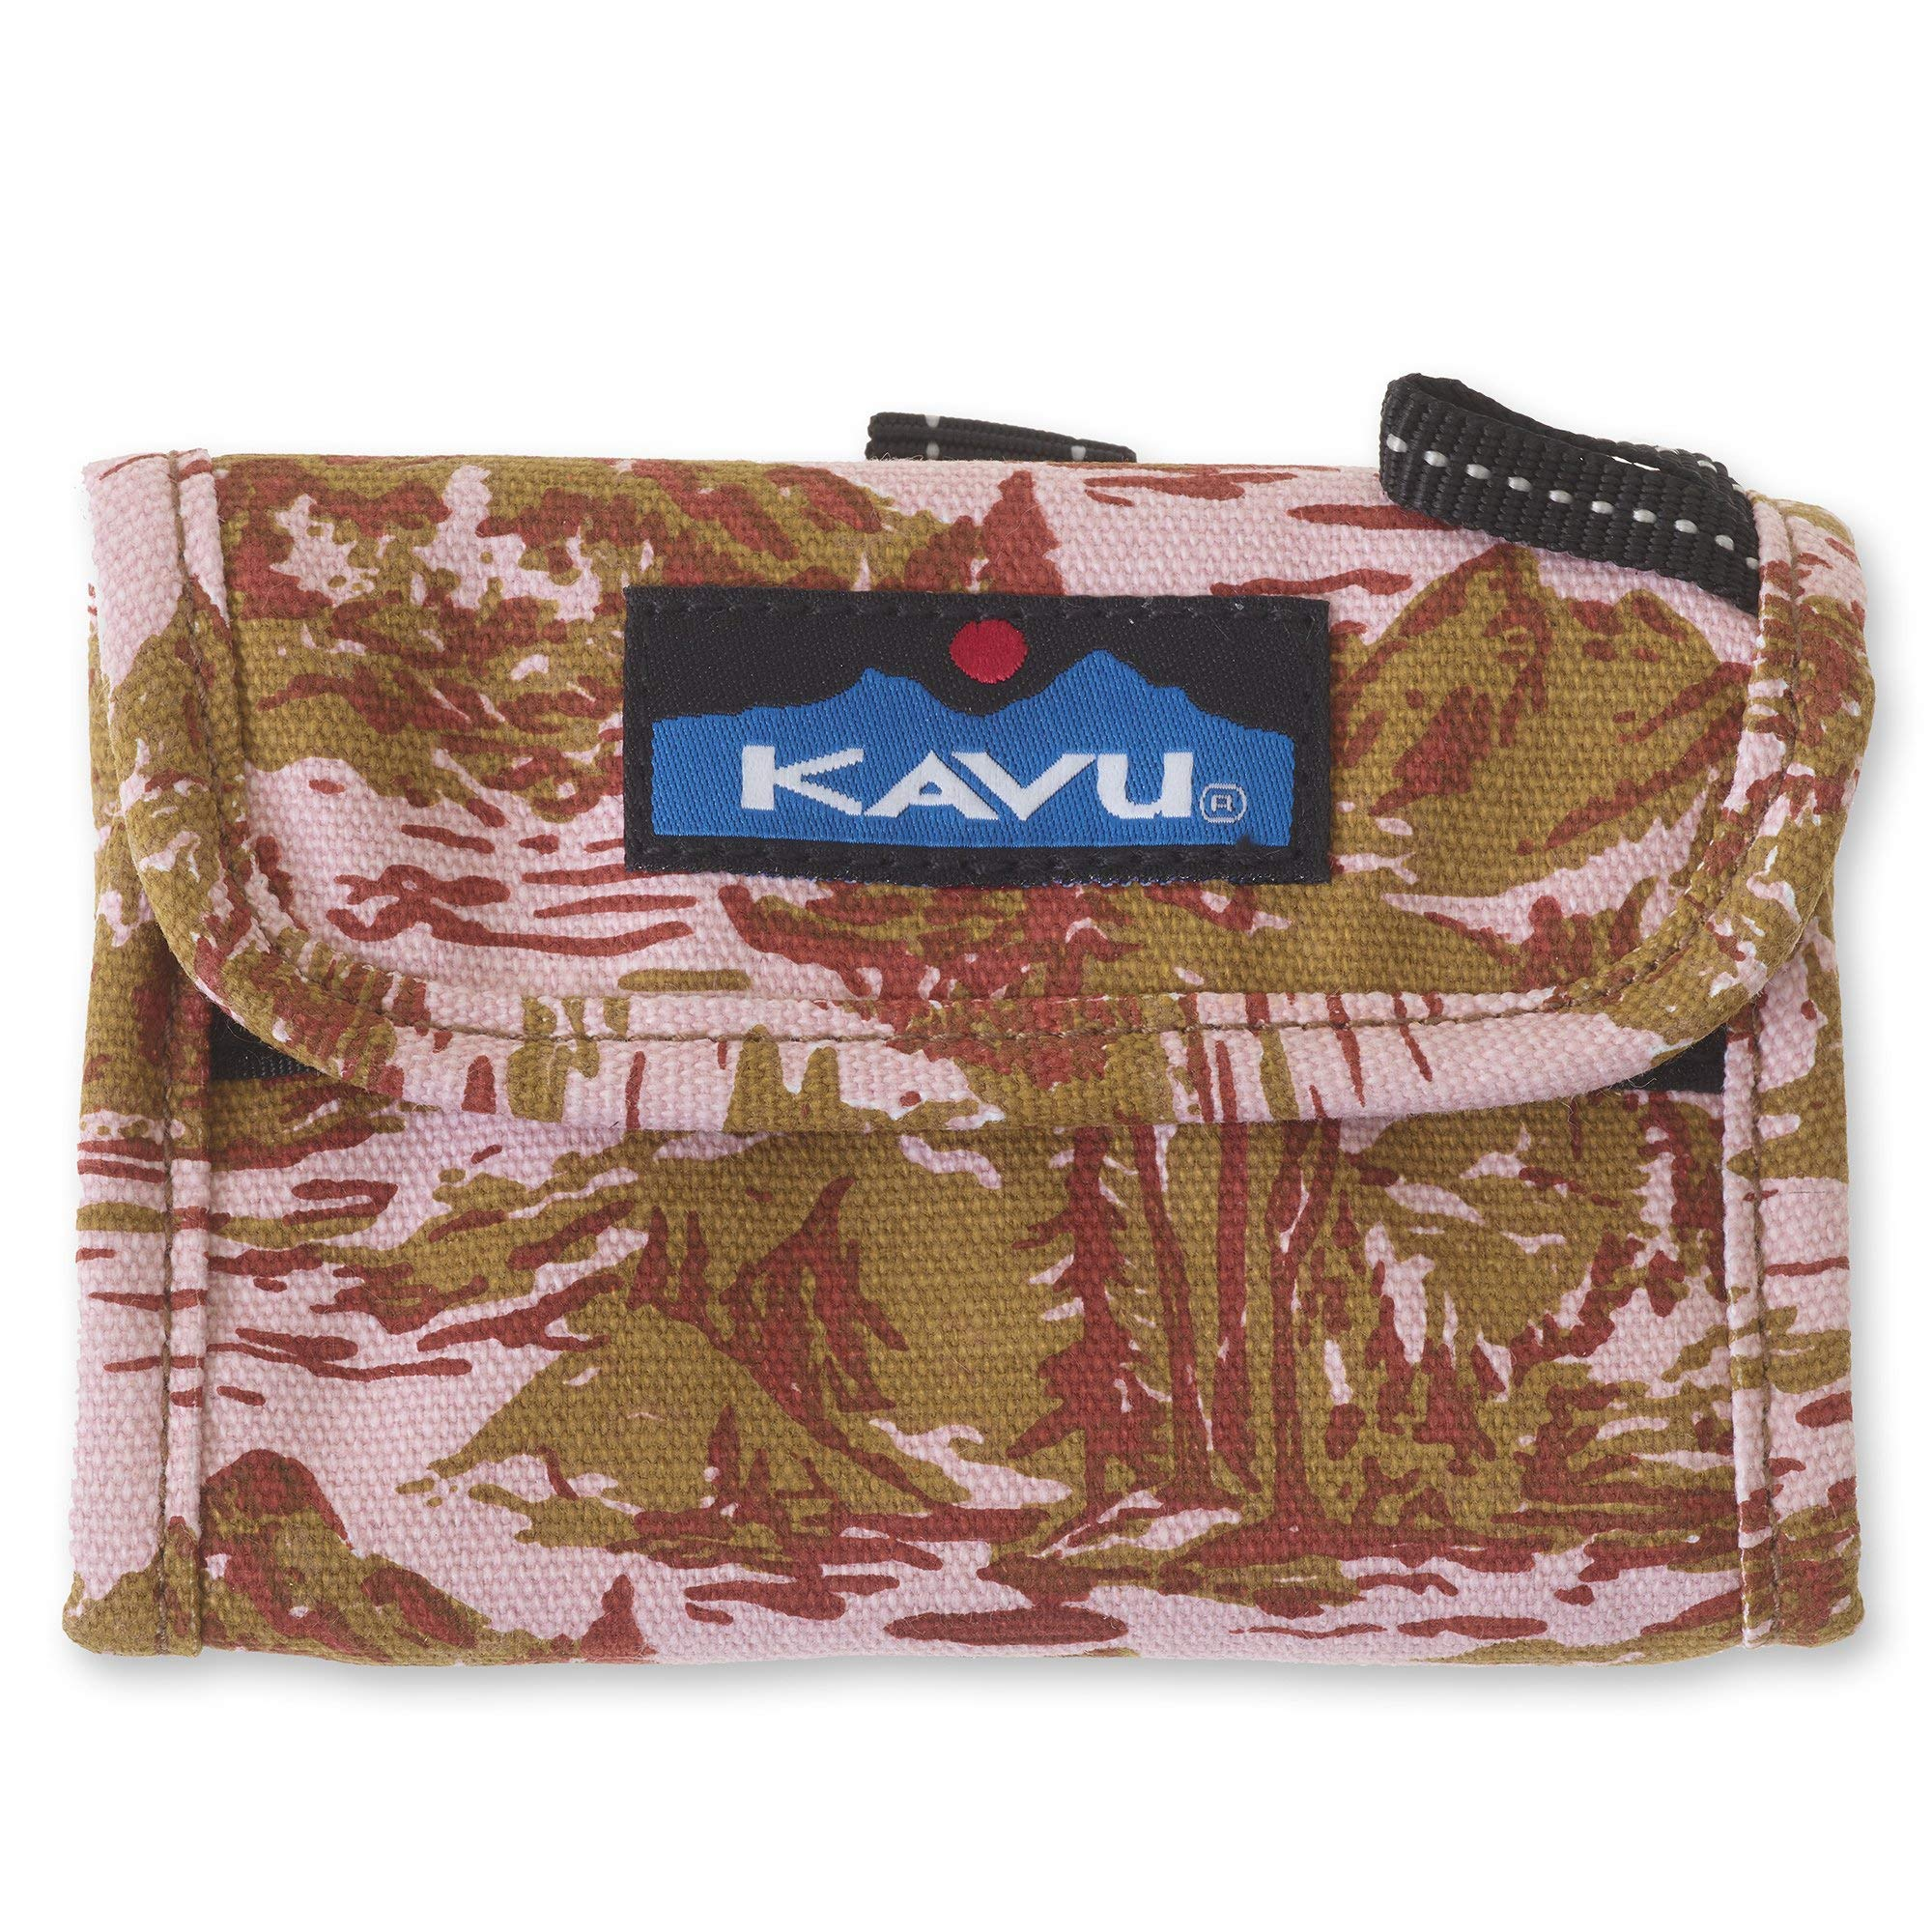 KAVU Wally Trifold Wallet For Women with Coin Pocket and Key Ring - Blush Landscape